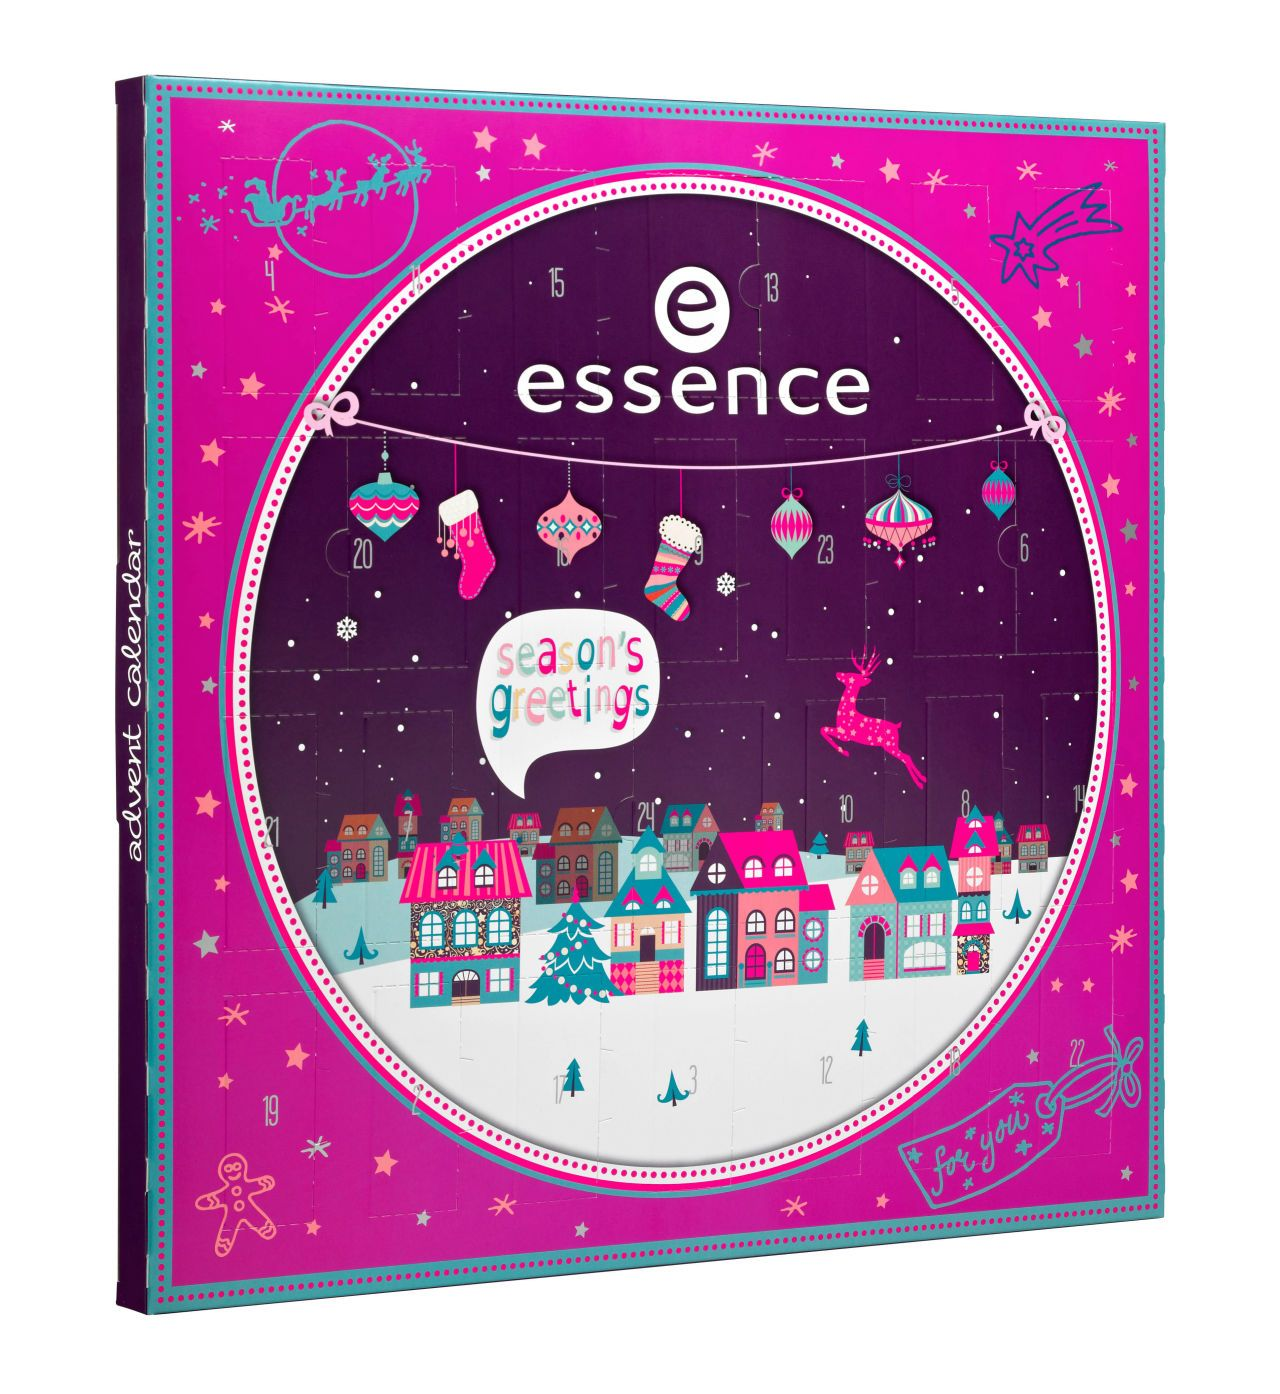 Essence Weihnachtskalender 2019.Brb Just Drooling Over Diptyque S Beauty Advent Calendar